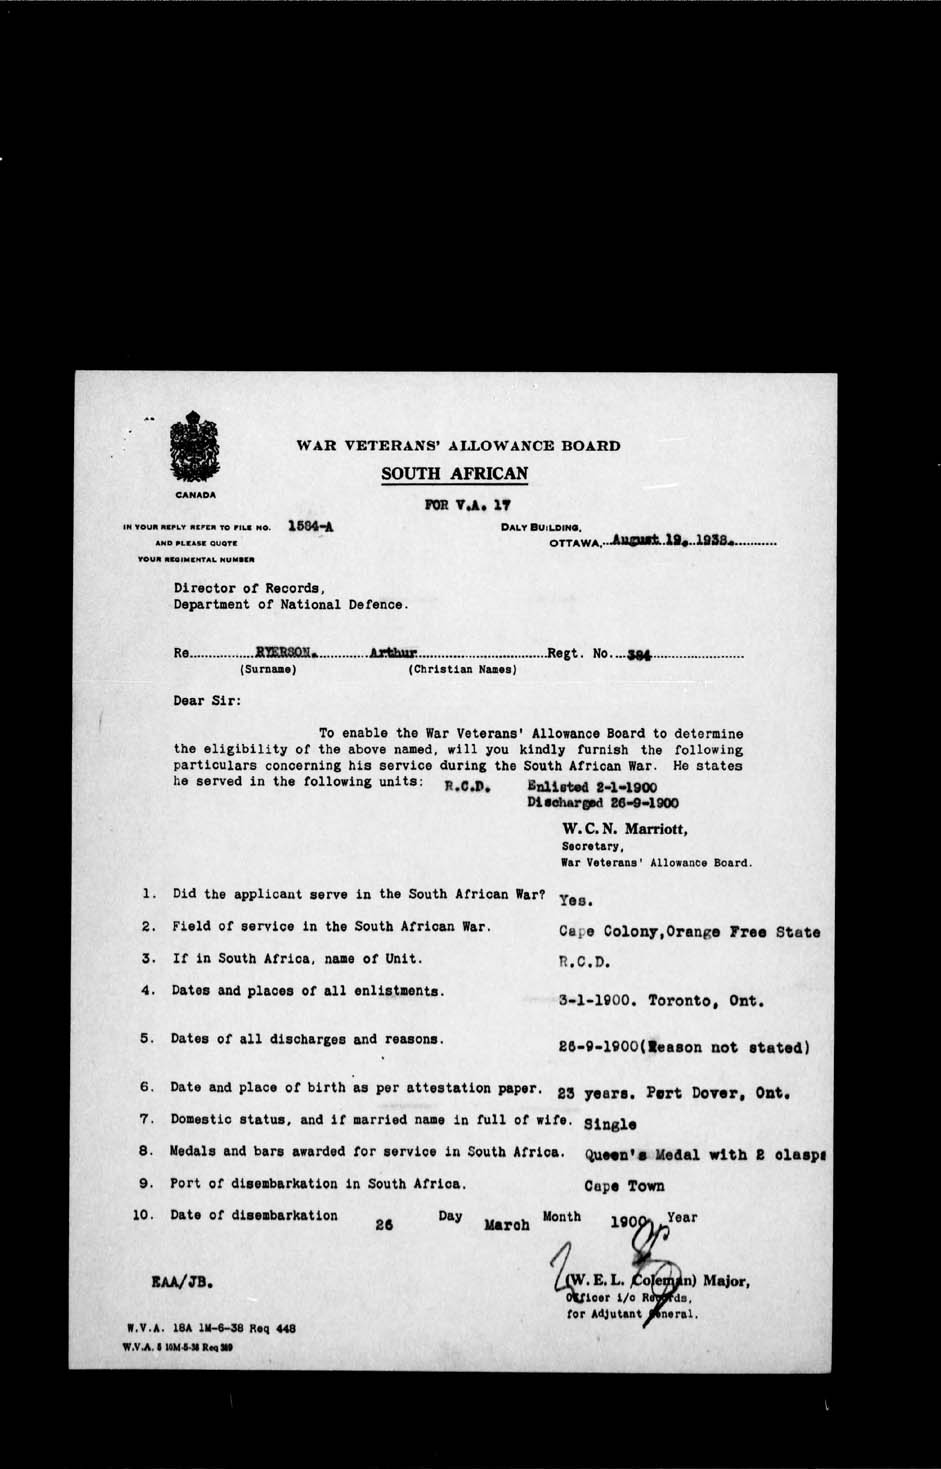 Digitized page of Boer War for Image No.: e002199329